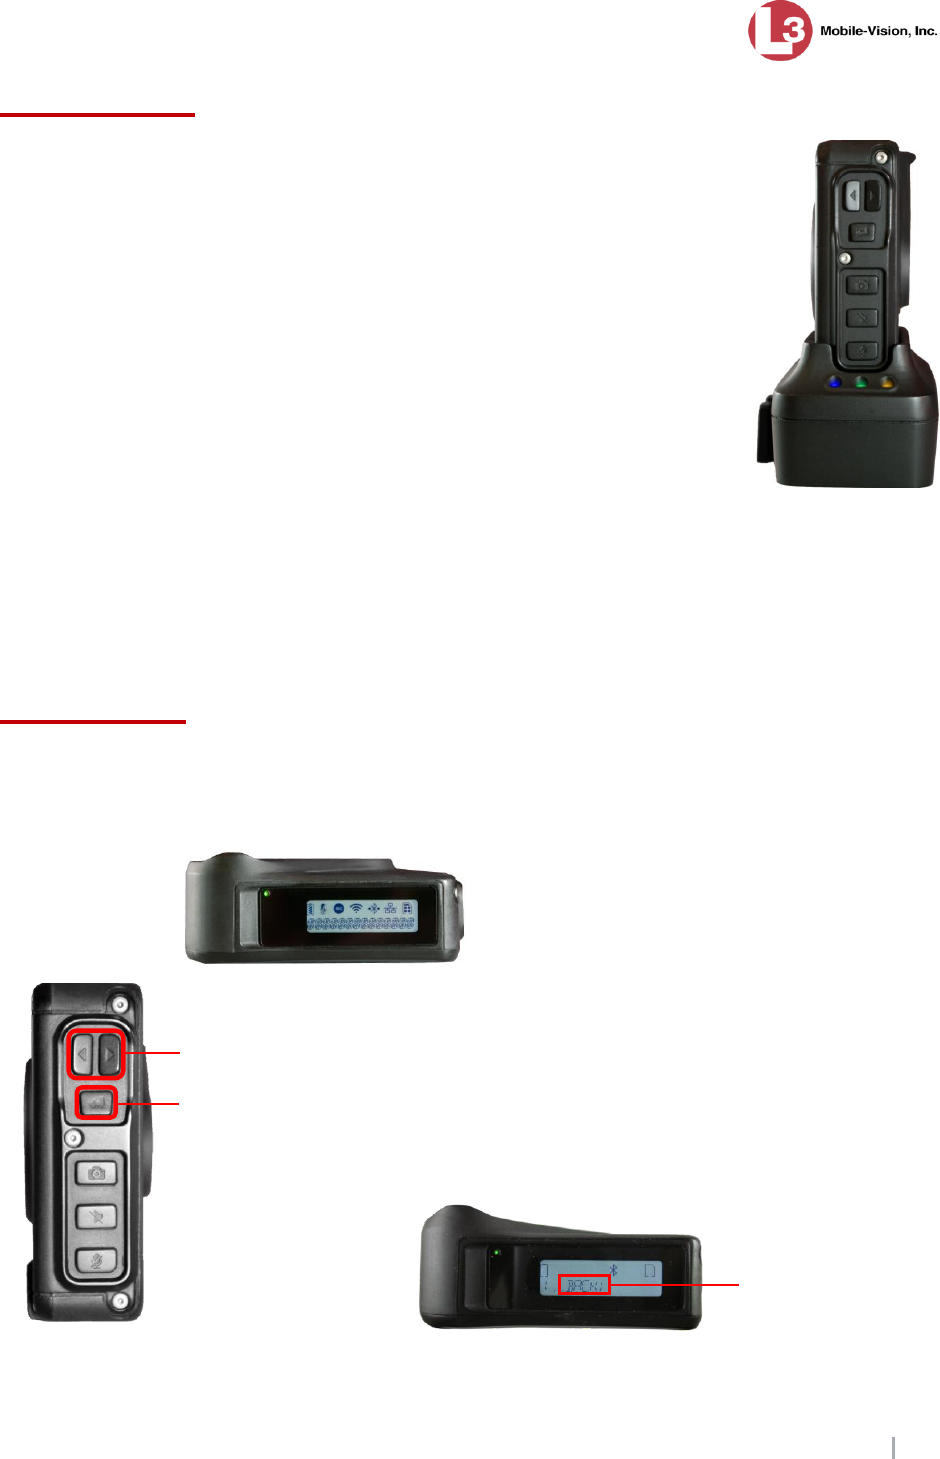 L3 Mobile Vision 1M01831 WIFI AND BLUETOOTH MODULE User